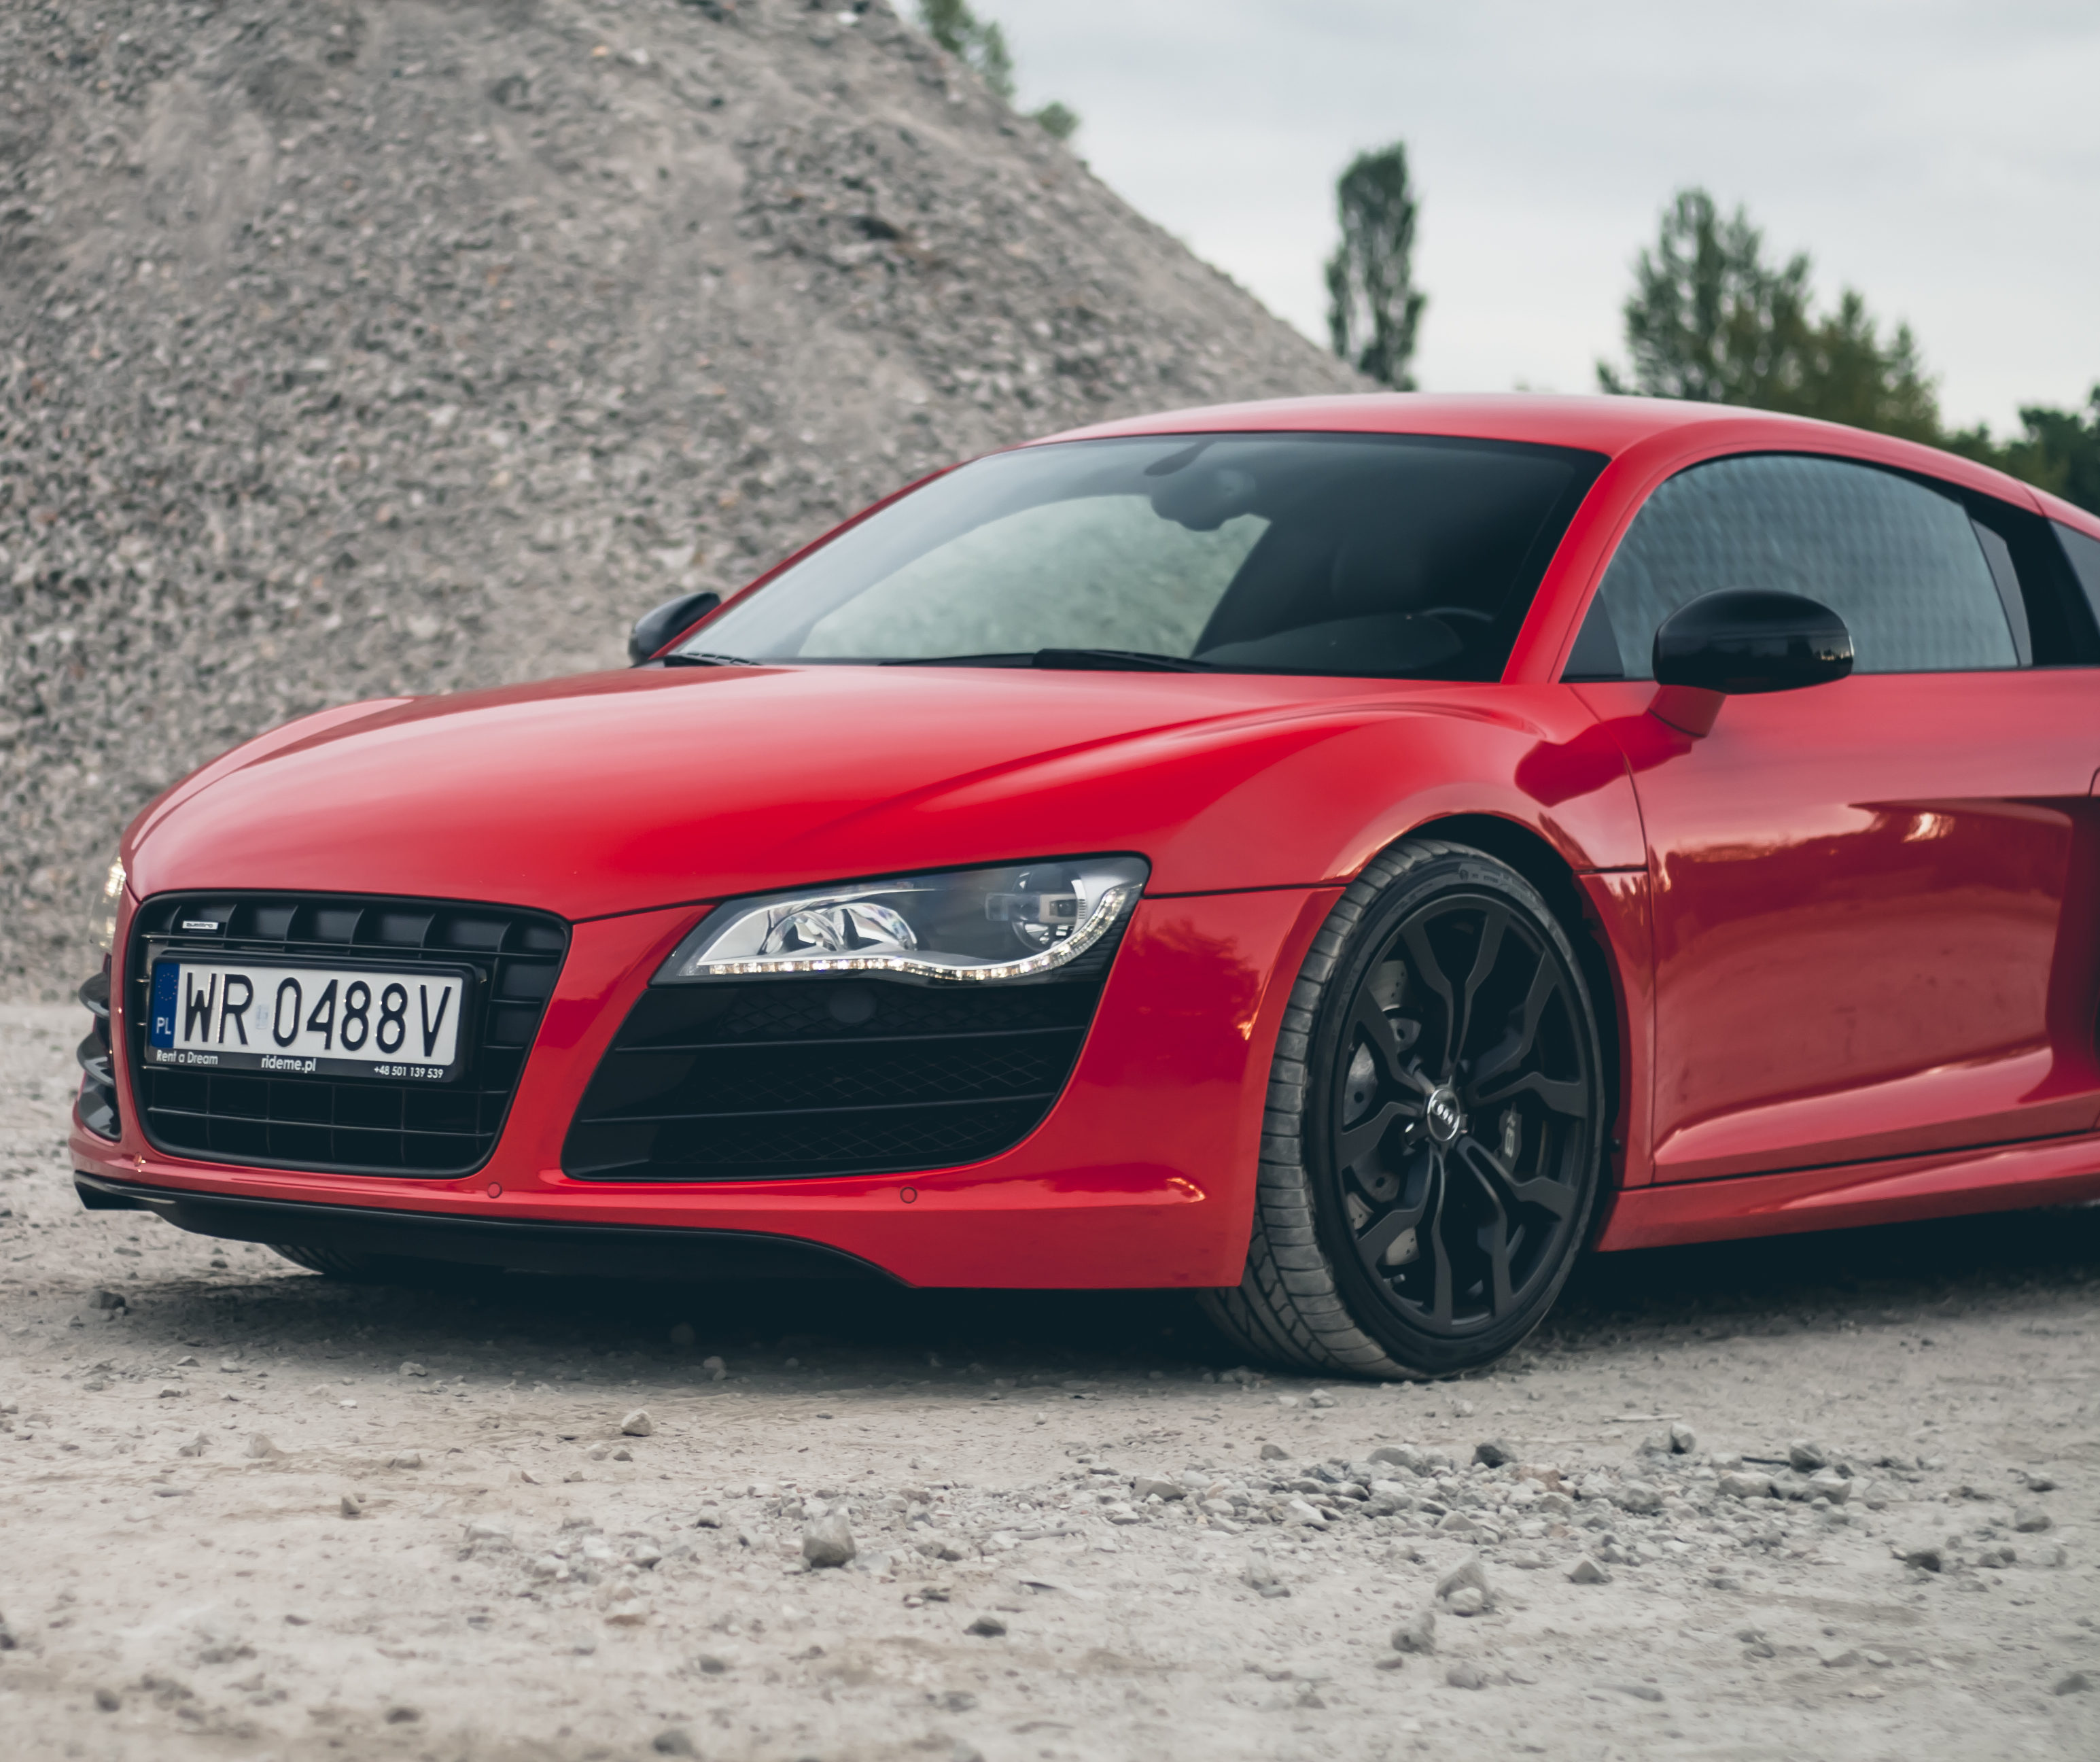 Lady in Red – Audi R8